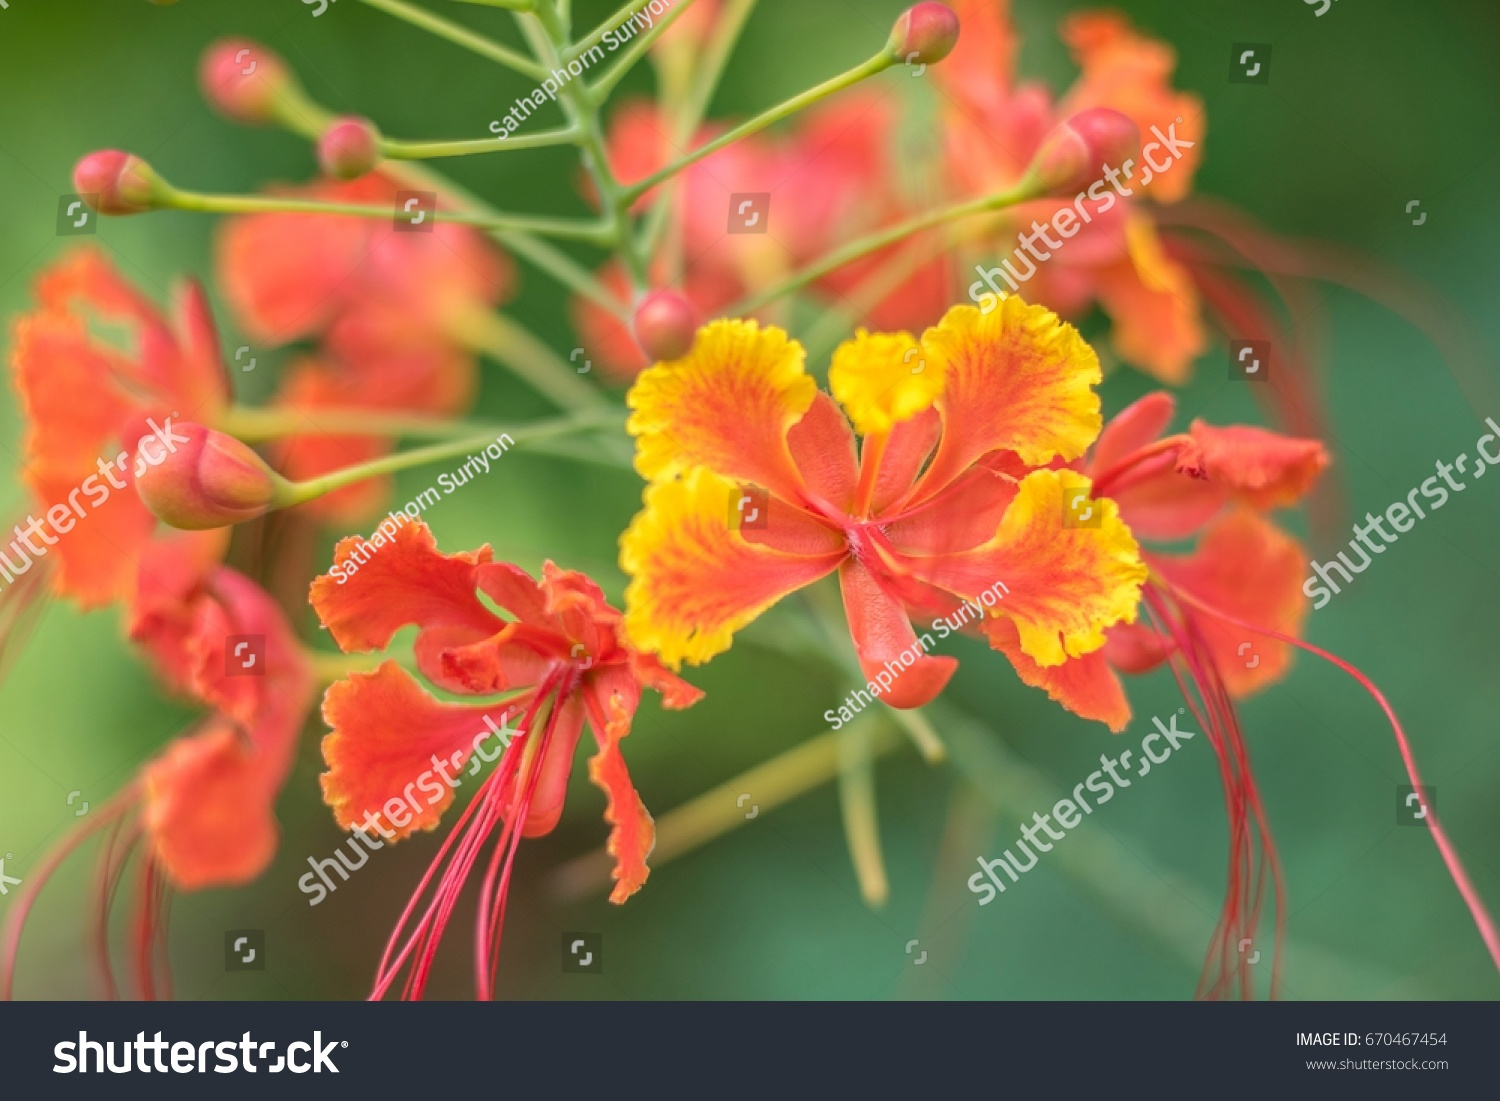 Orange beautiful flowers blooming in the garden ez canvas id 670467454 izmirmasajfo